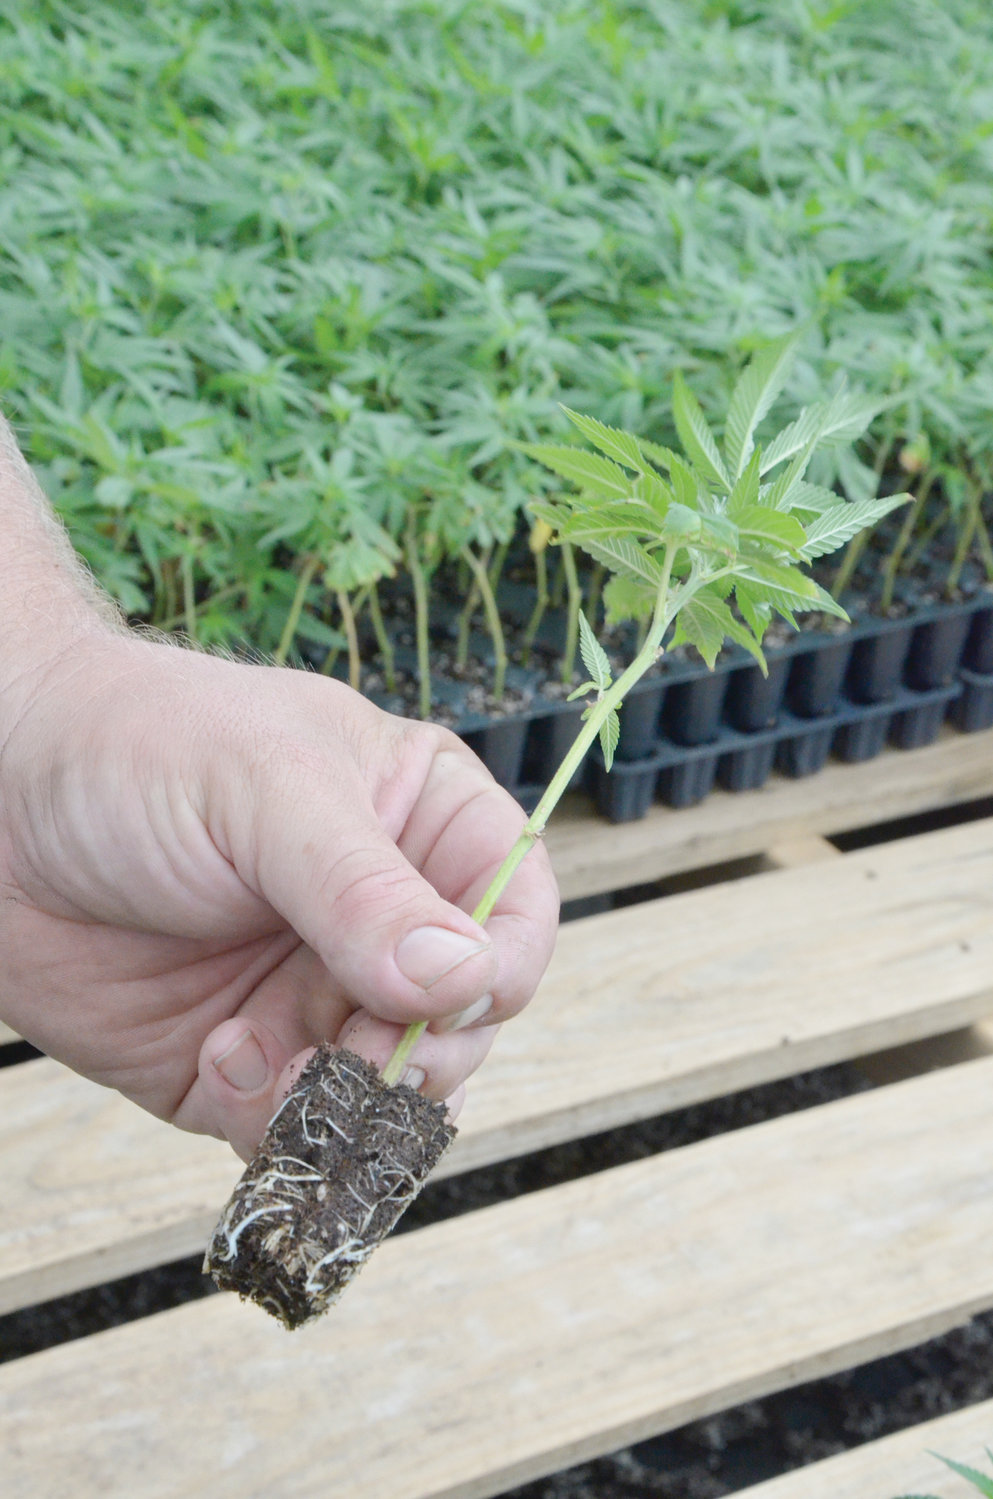 Industrial hemp clones created from plants grown at the Gary Thomas Farms greenhouses. It only takes a week or so for significant root growth to occur.